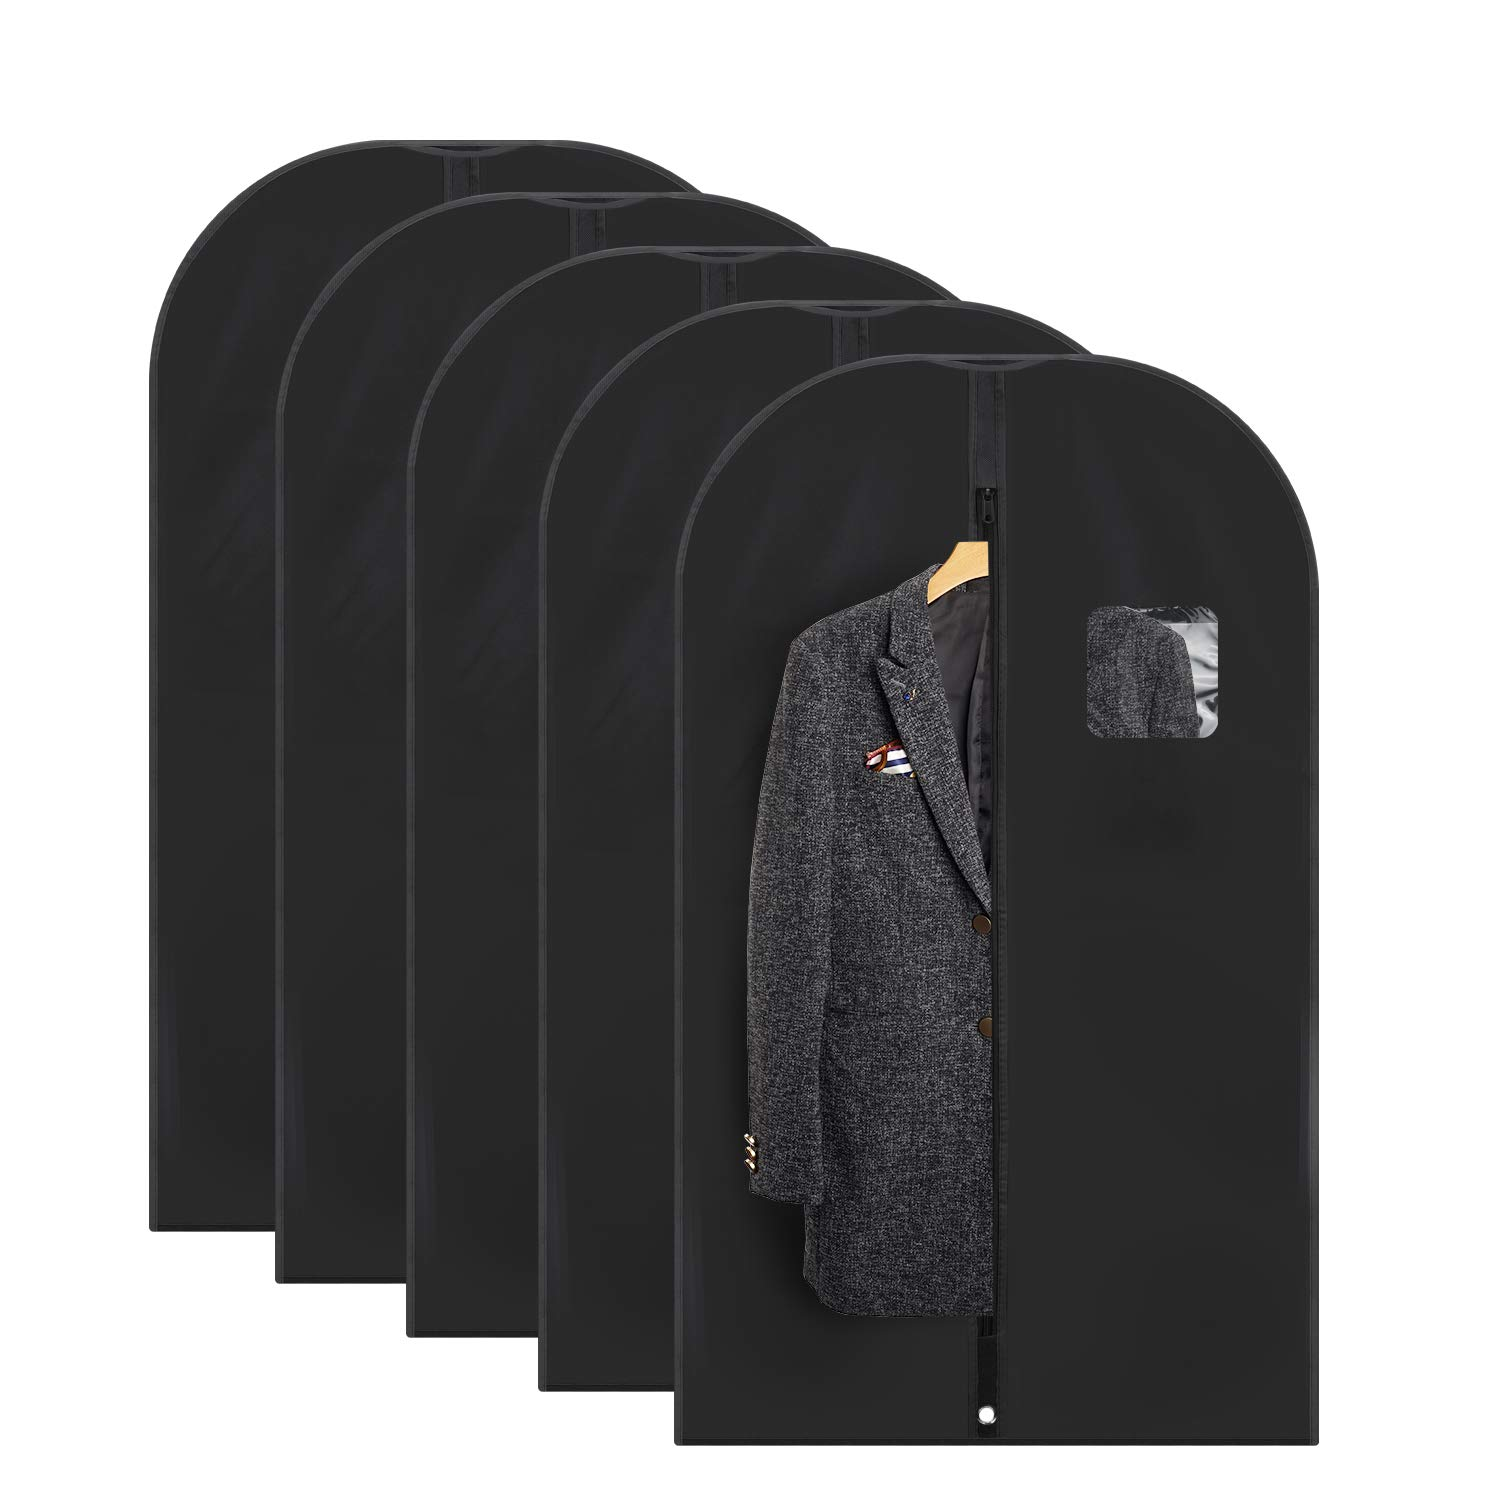 Fu Global Garment Bag Covers for Luggage, Dresses, Linens, Storage or Travel 42'' Suit Bag with Clear Window Pack of 5